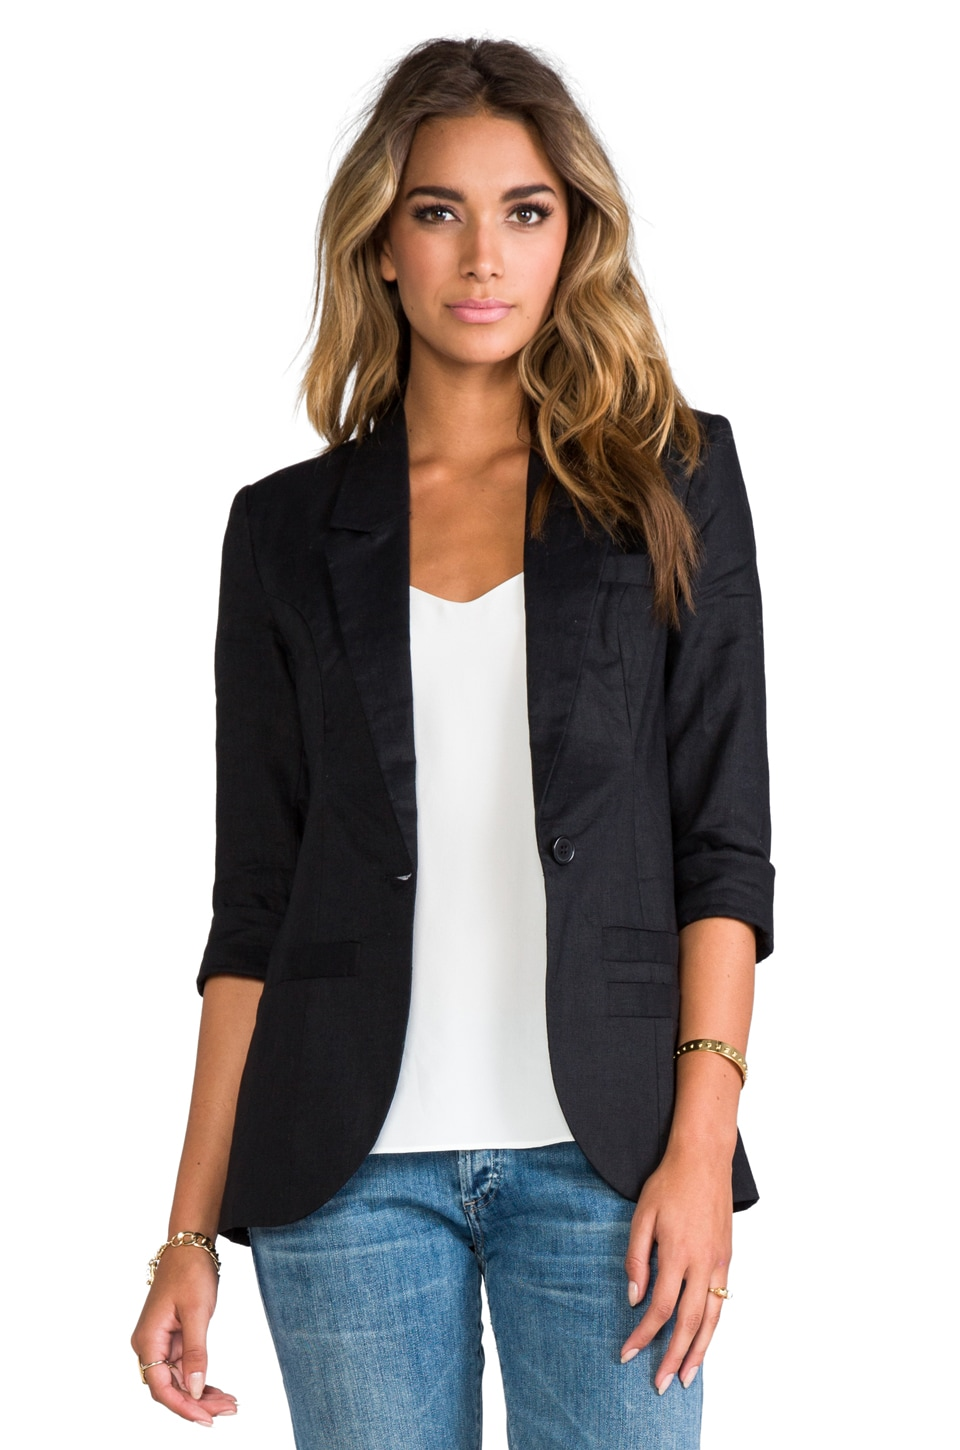 Central Park West Durham Linen Elbow Sleeve Blazer in Black